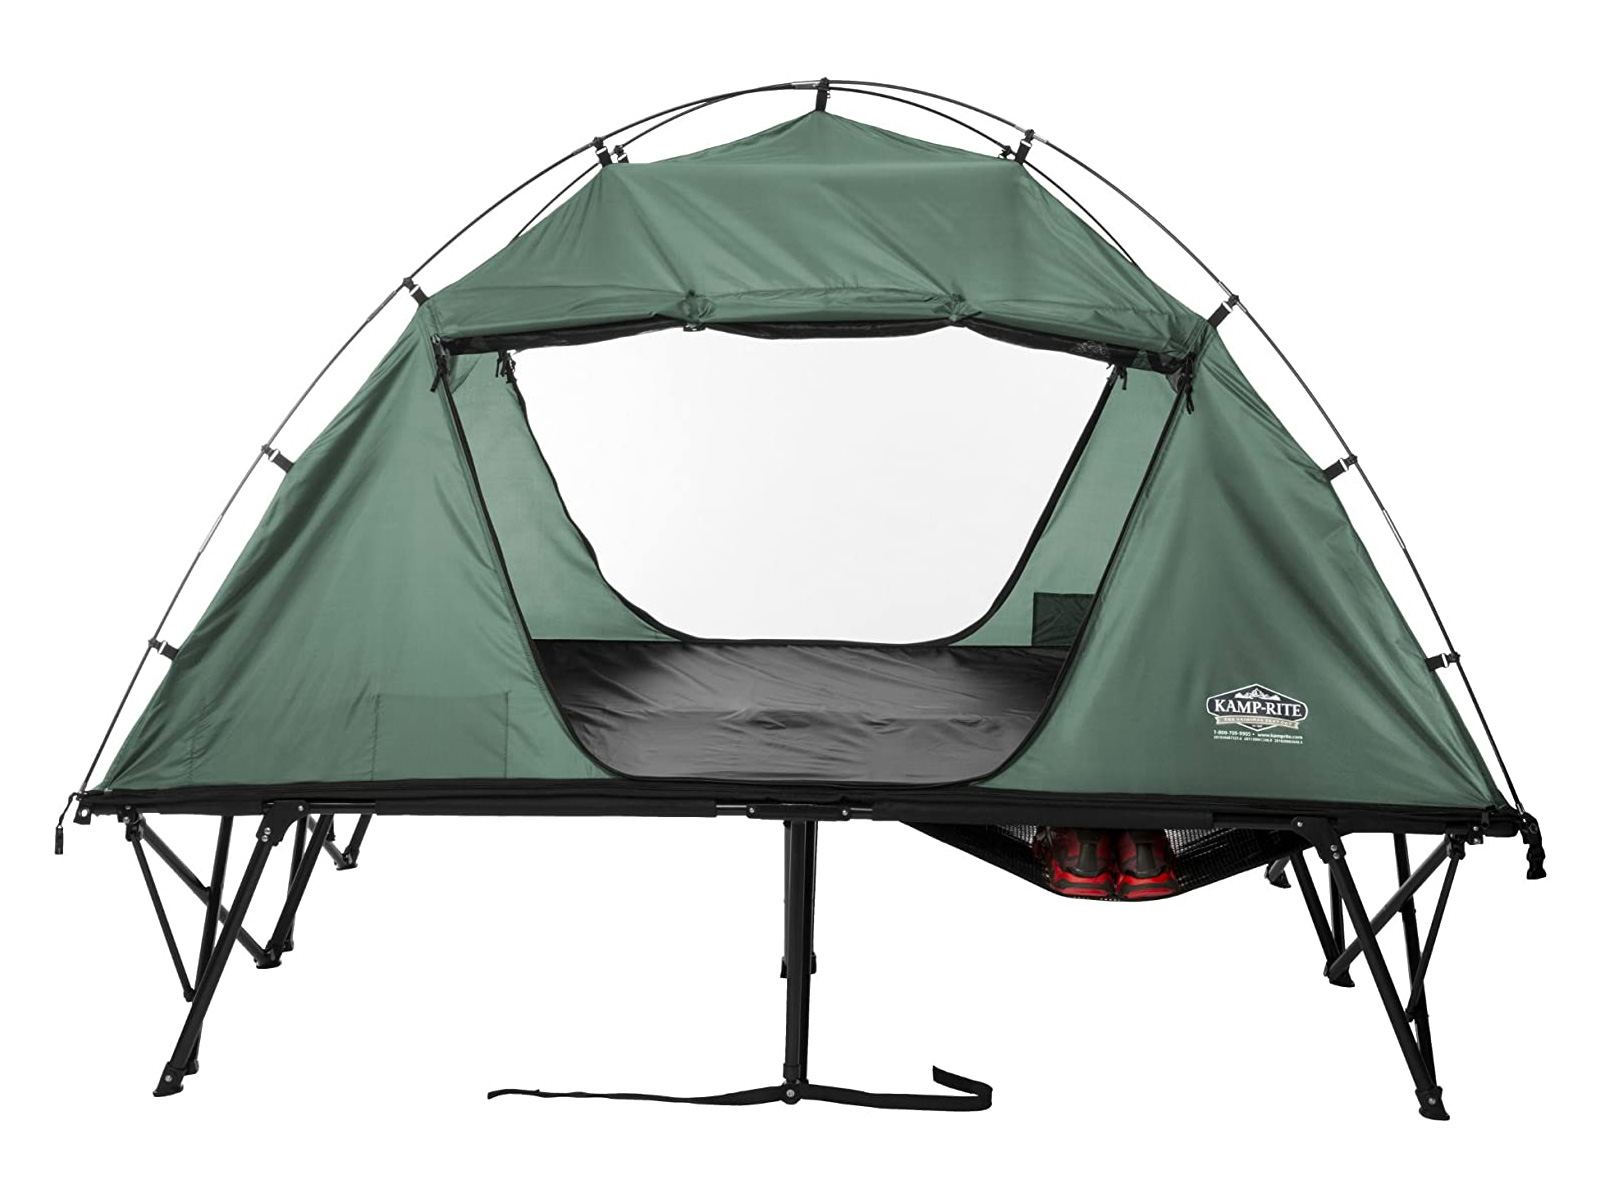 Elevate Your Camping Experience With A Tent Cot at werd.com